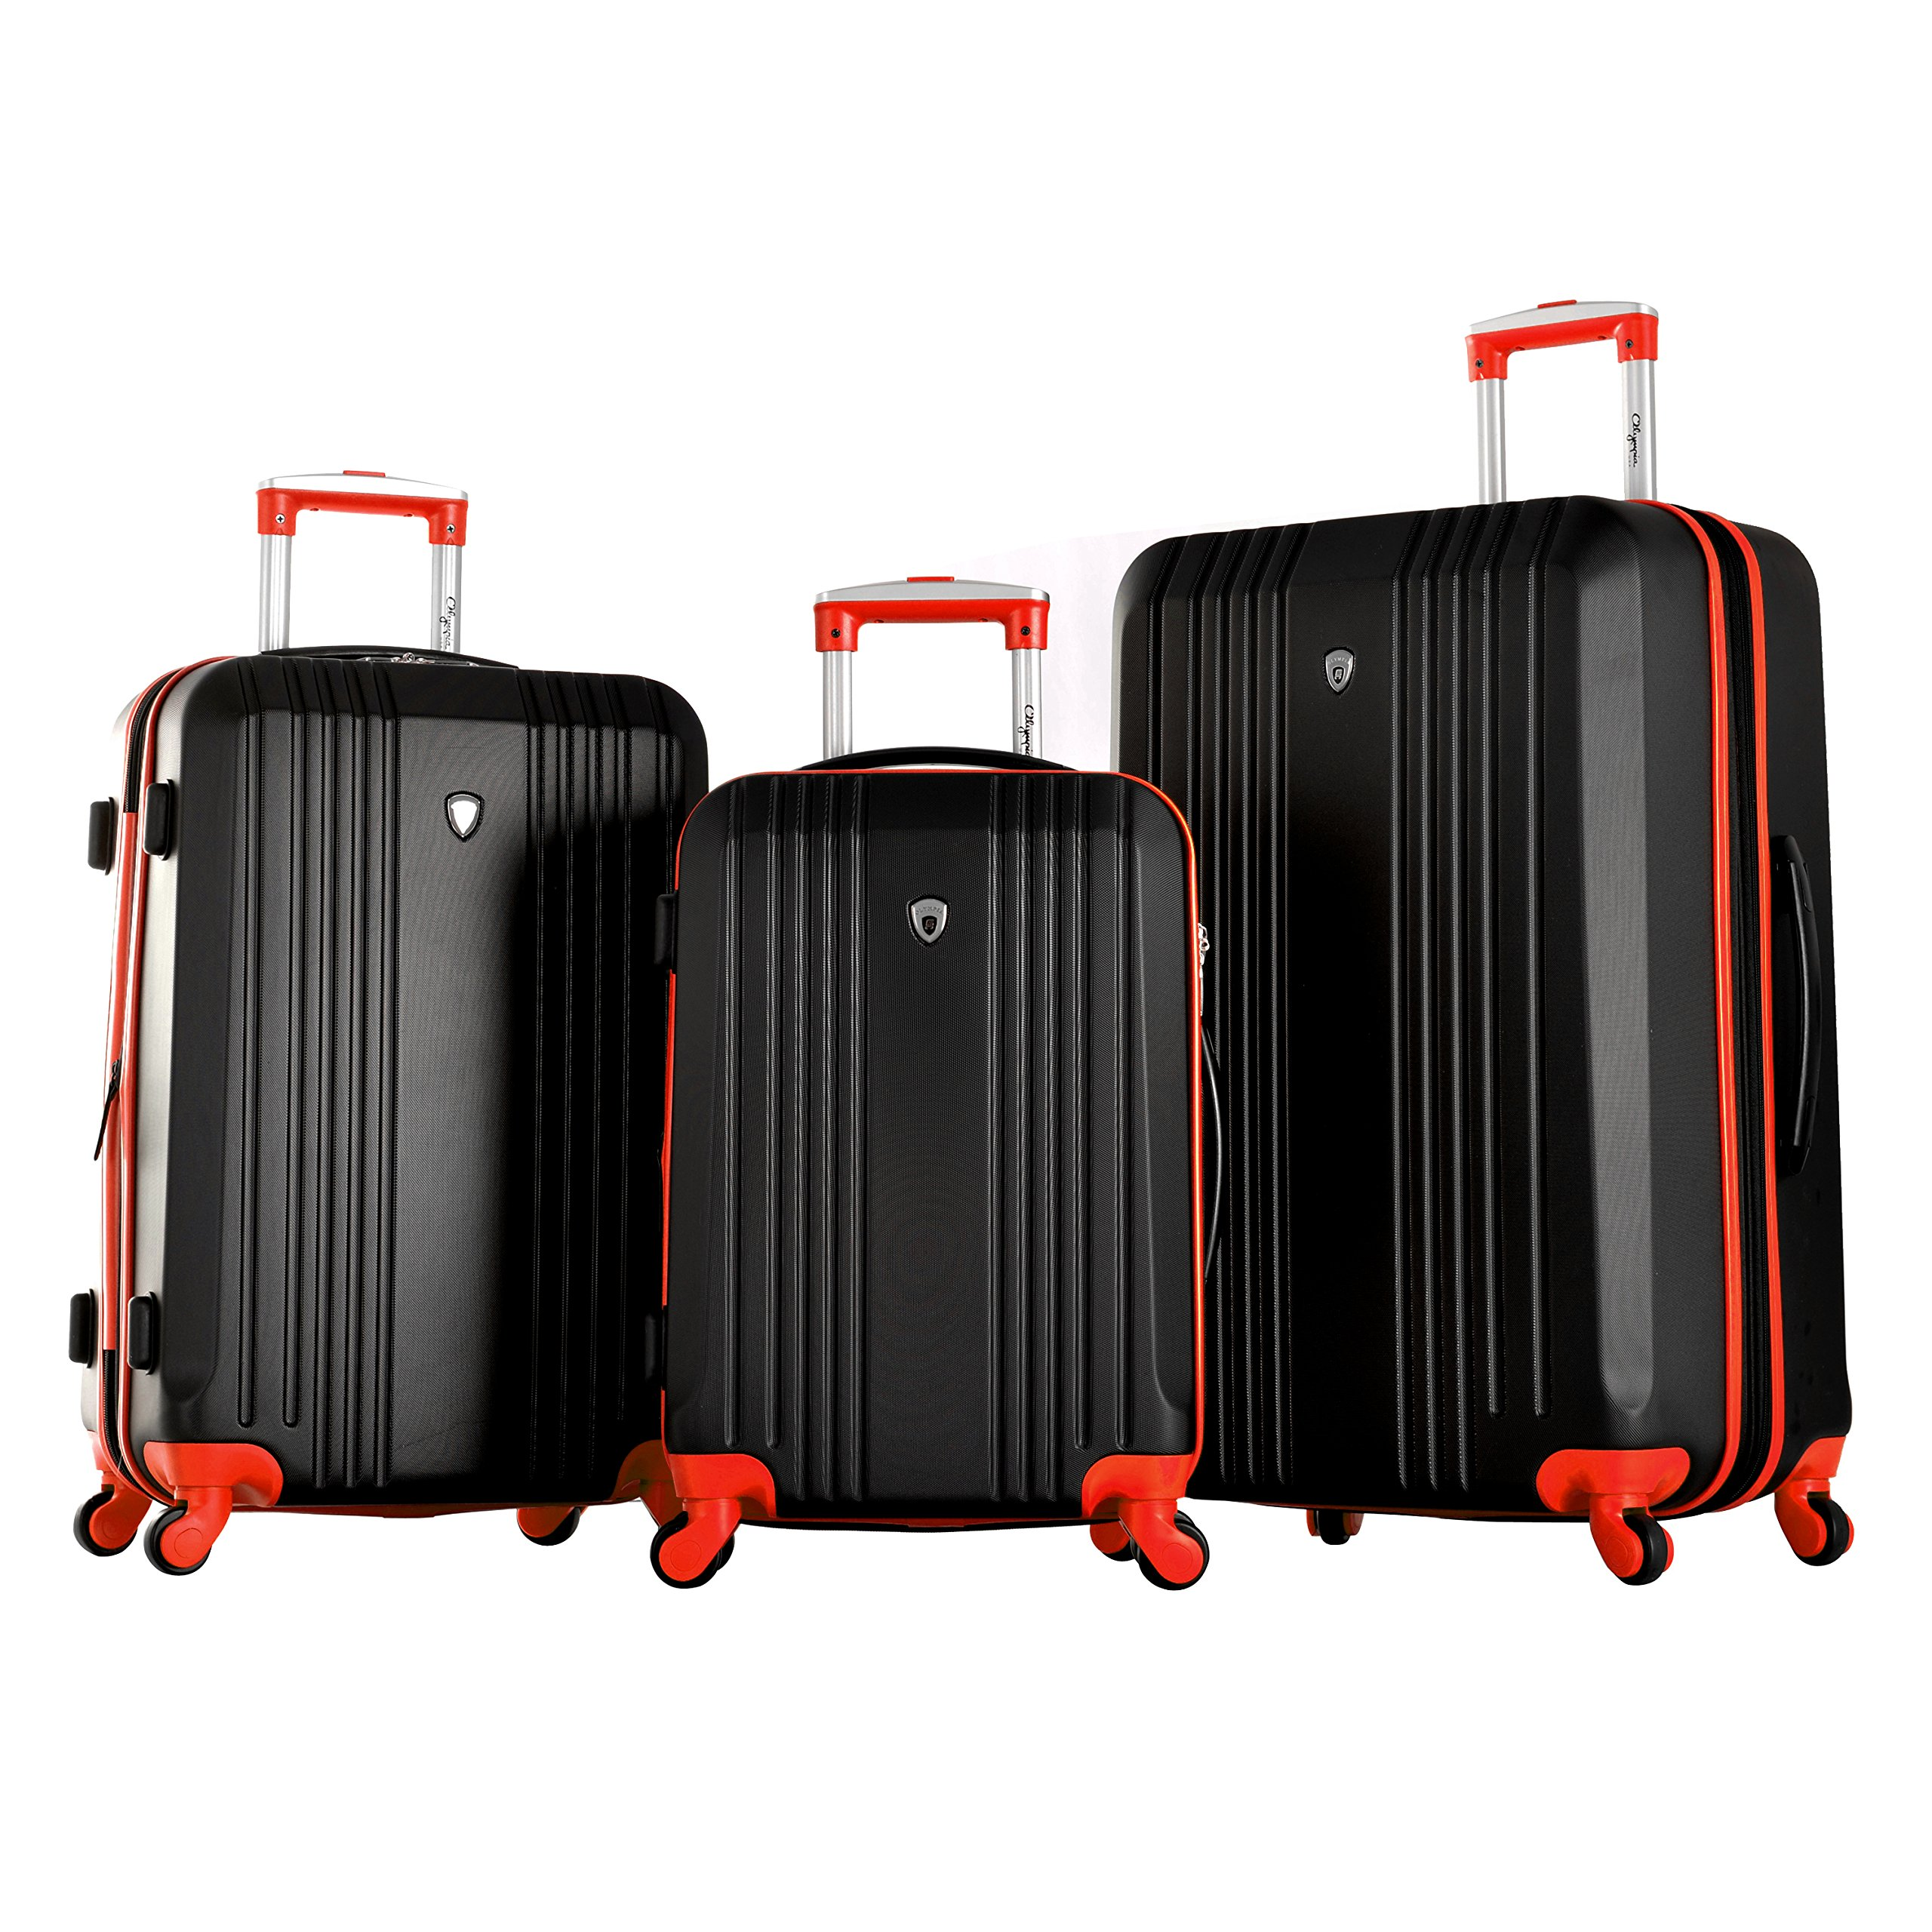 Olympia Apache 3pc Hardcase Spinner Luggage Set, Black/Red